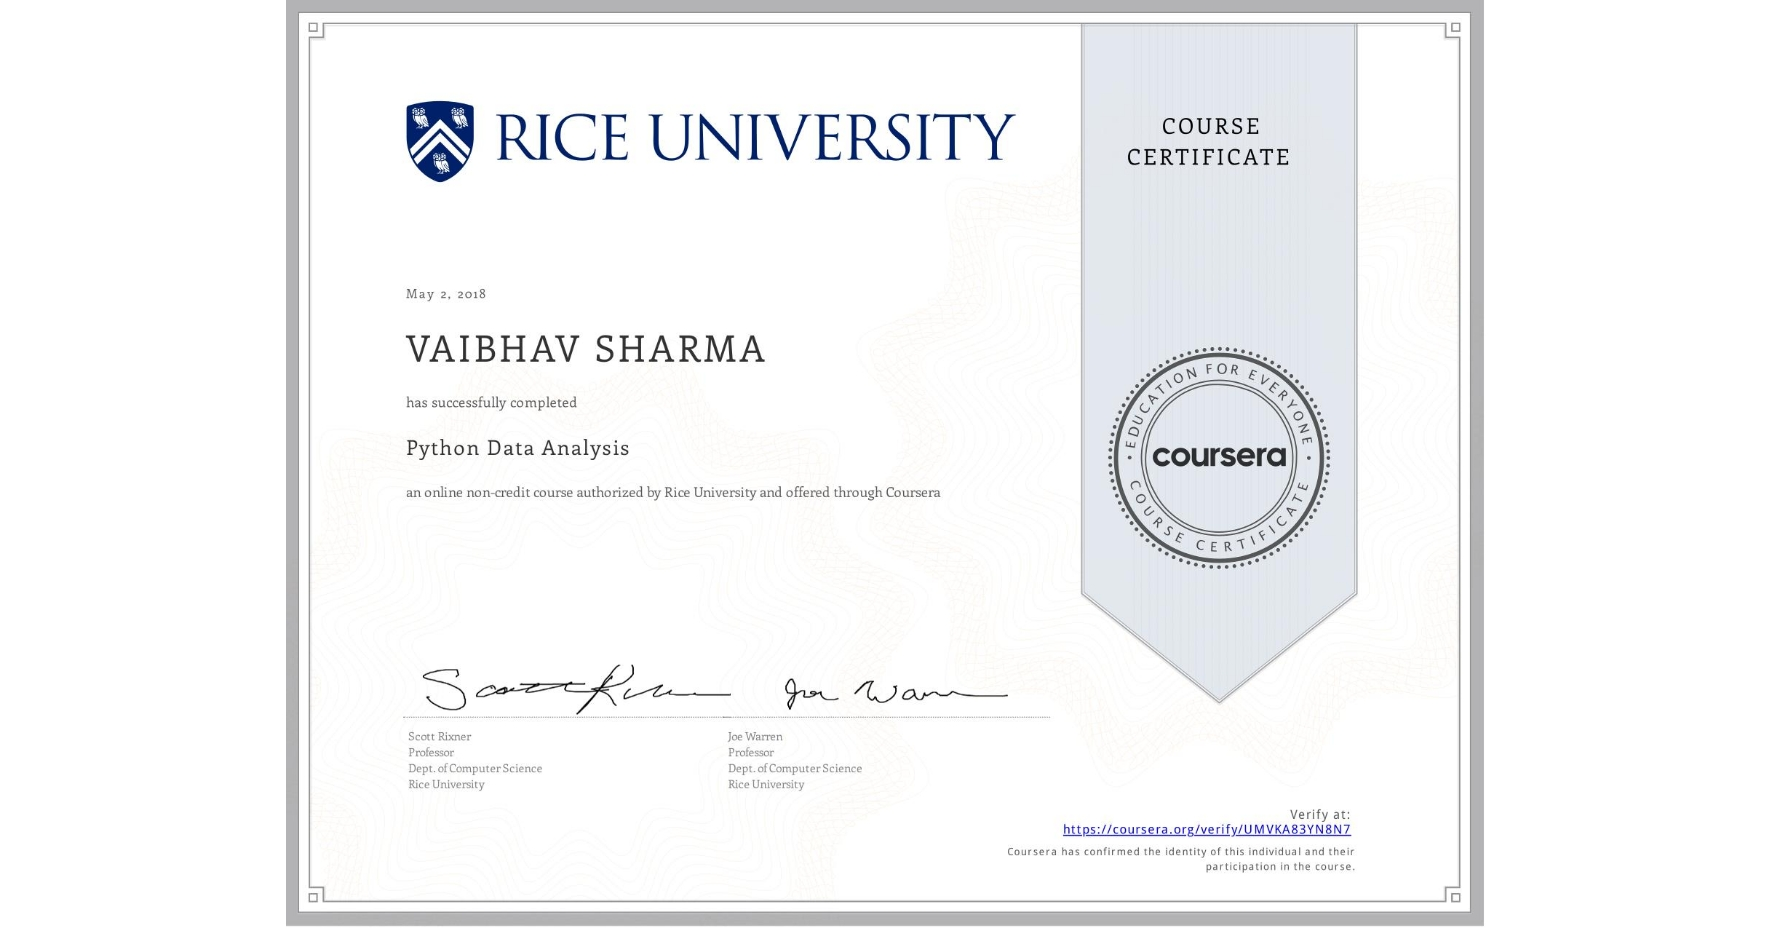 View certificate for VAIBHAV SHARMA, Python Data Analysis, an online non-credit course authorized by Rice University and offered through Coursera